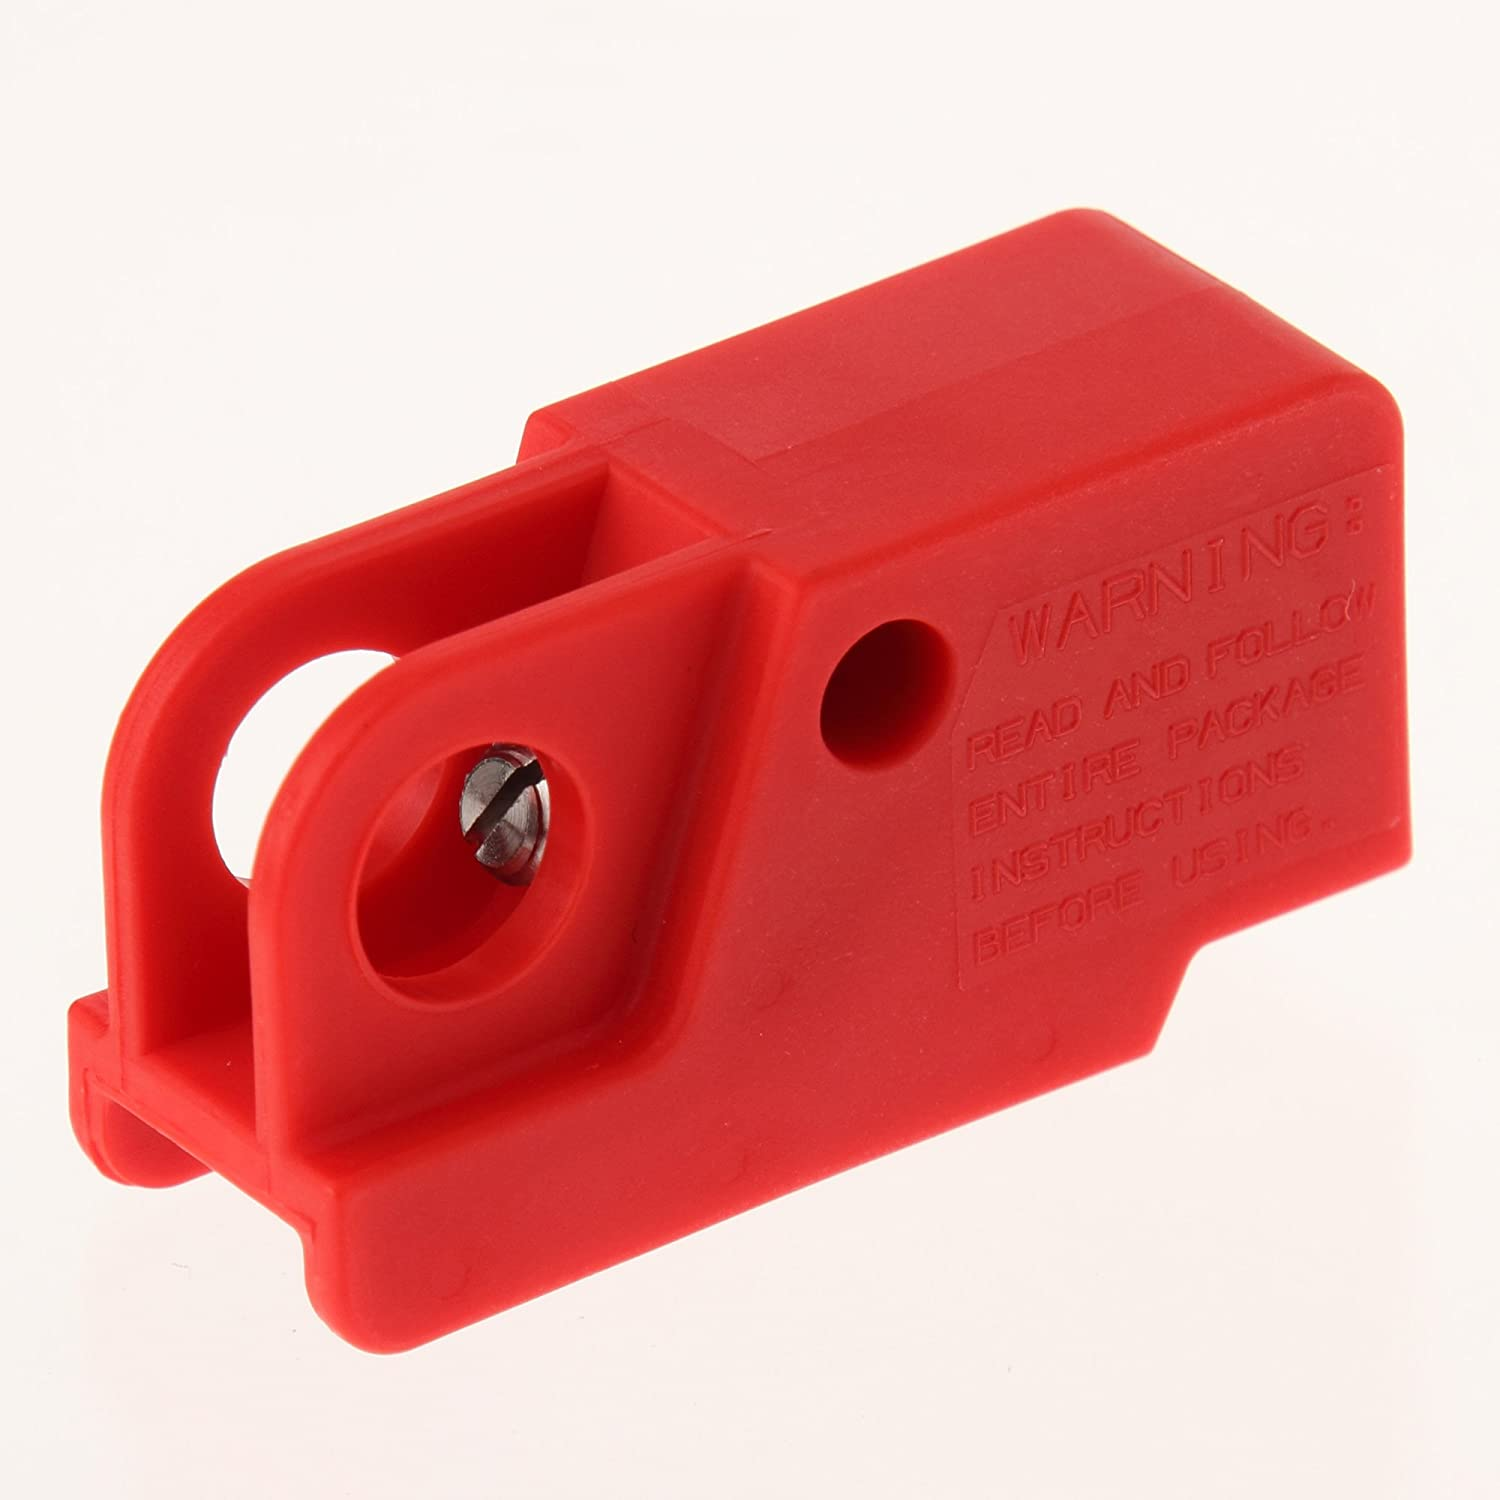 Panduit Psl Ws Toggle Switch Lockout Red Electrical Cables Amazon Hubbell 3 Way Wiring Industrial Scientific